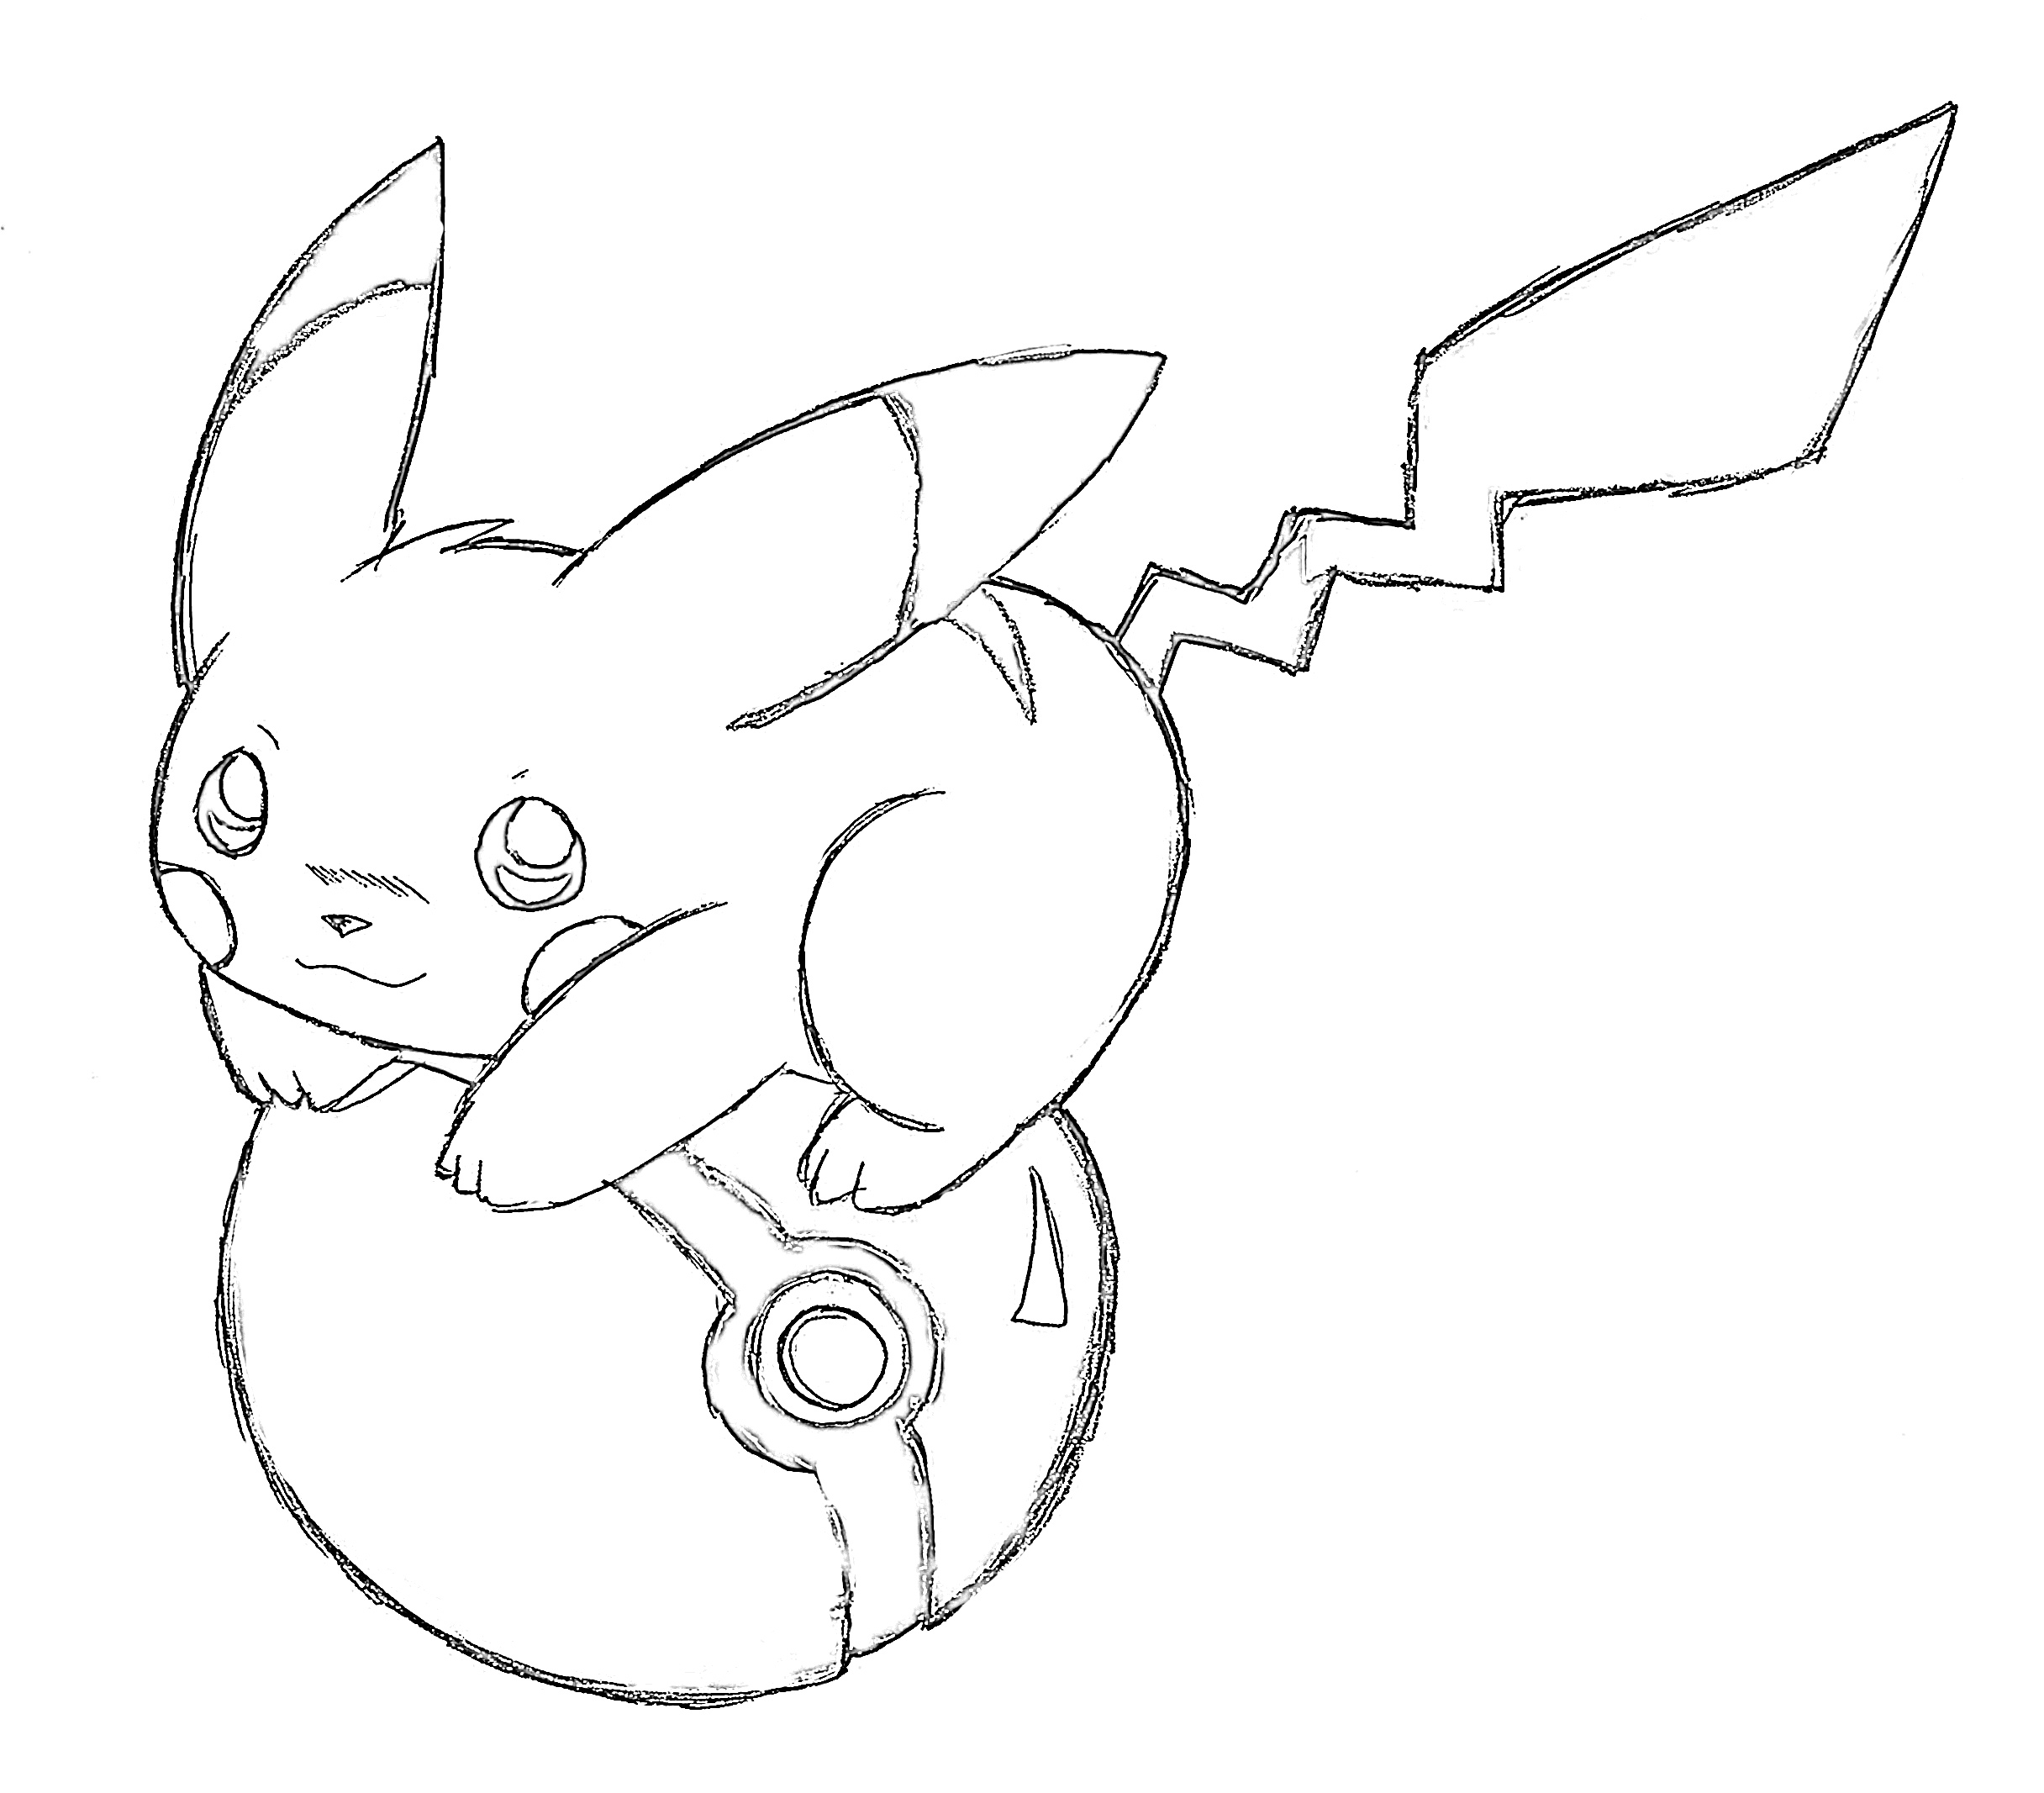 10 Free Pikachu Coloring Pages